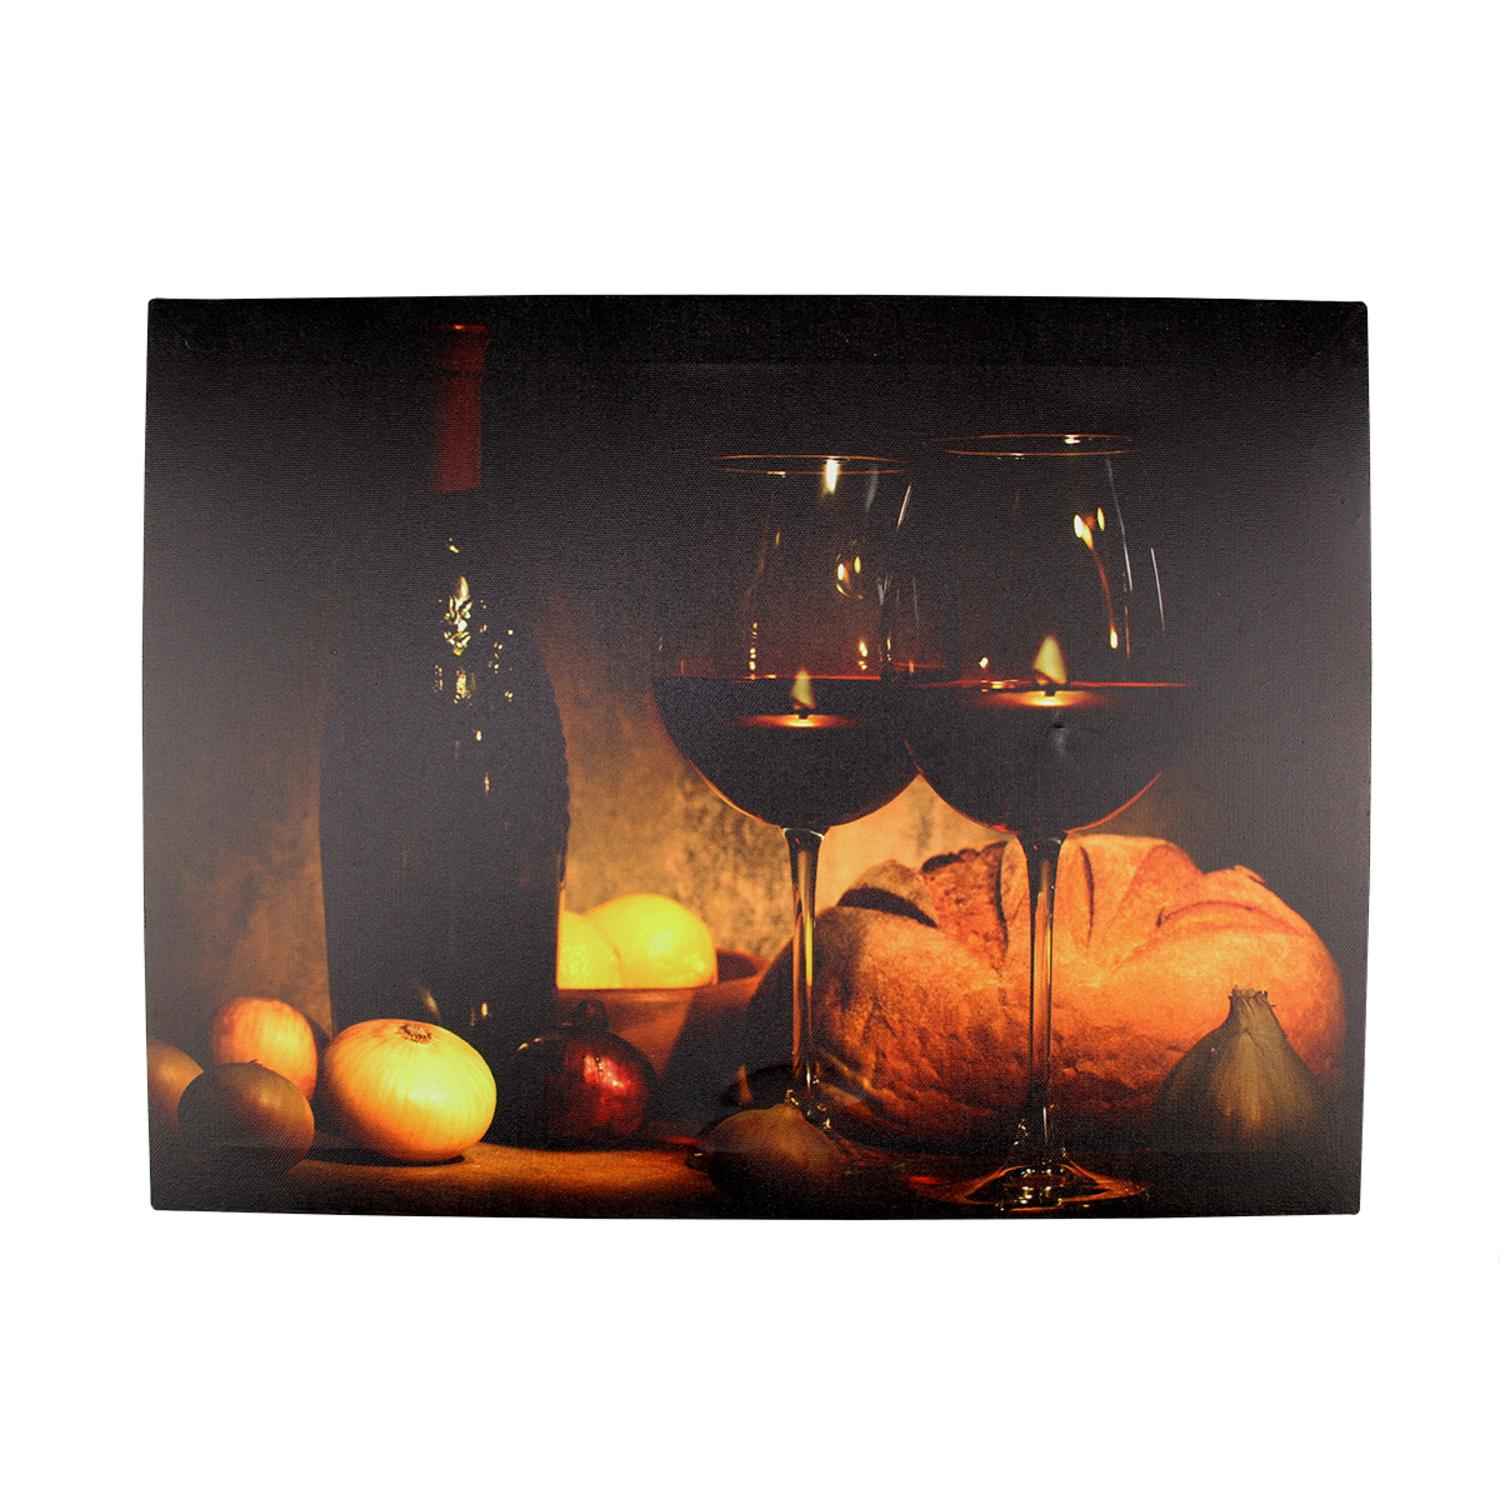 ''LED Lighted Flickering Wine  Bread and Candles Canvas Wall Art 11.75'''' x 15.75''''''